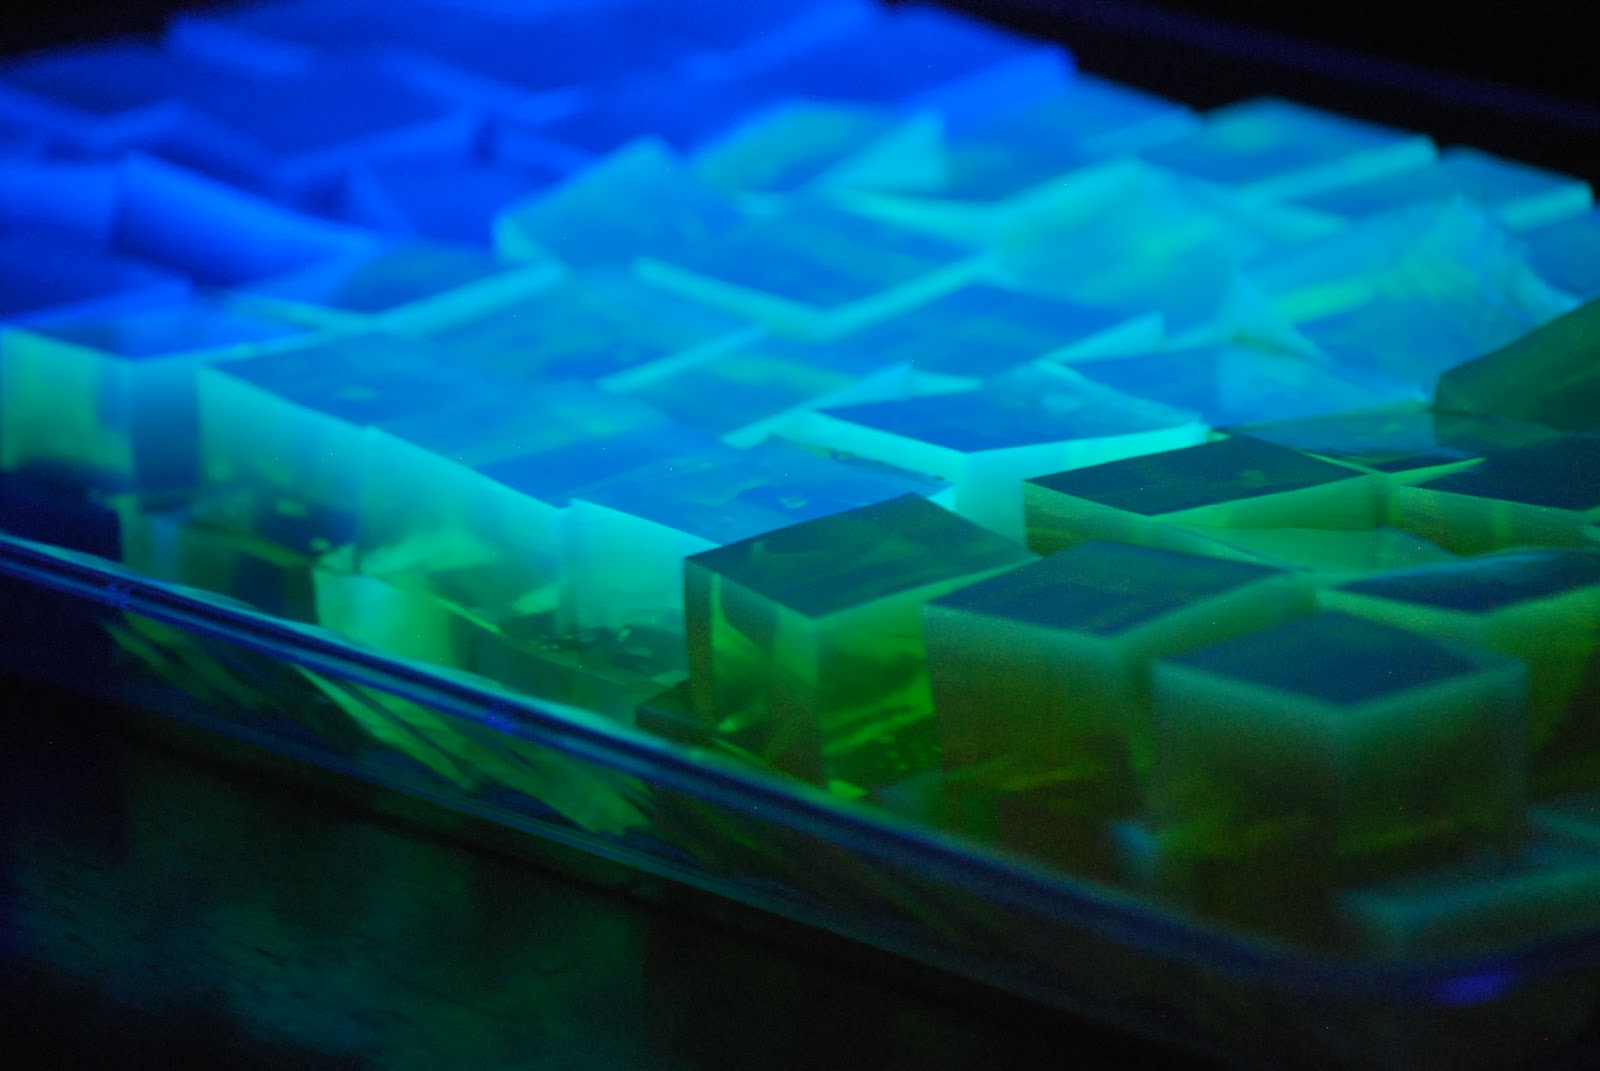 My story in recipes: Glow in the Dark Jello Squares